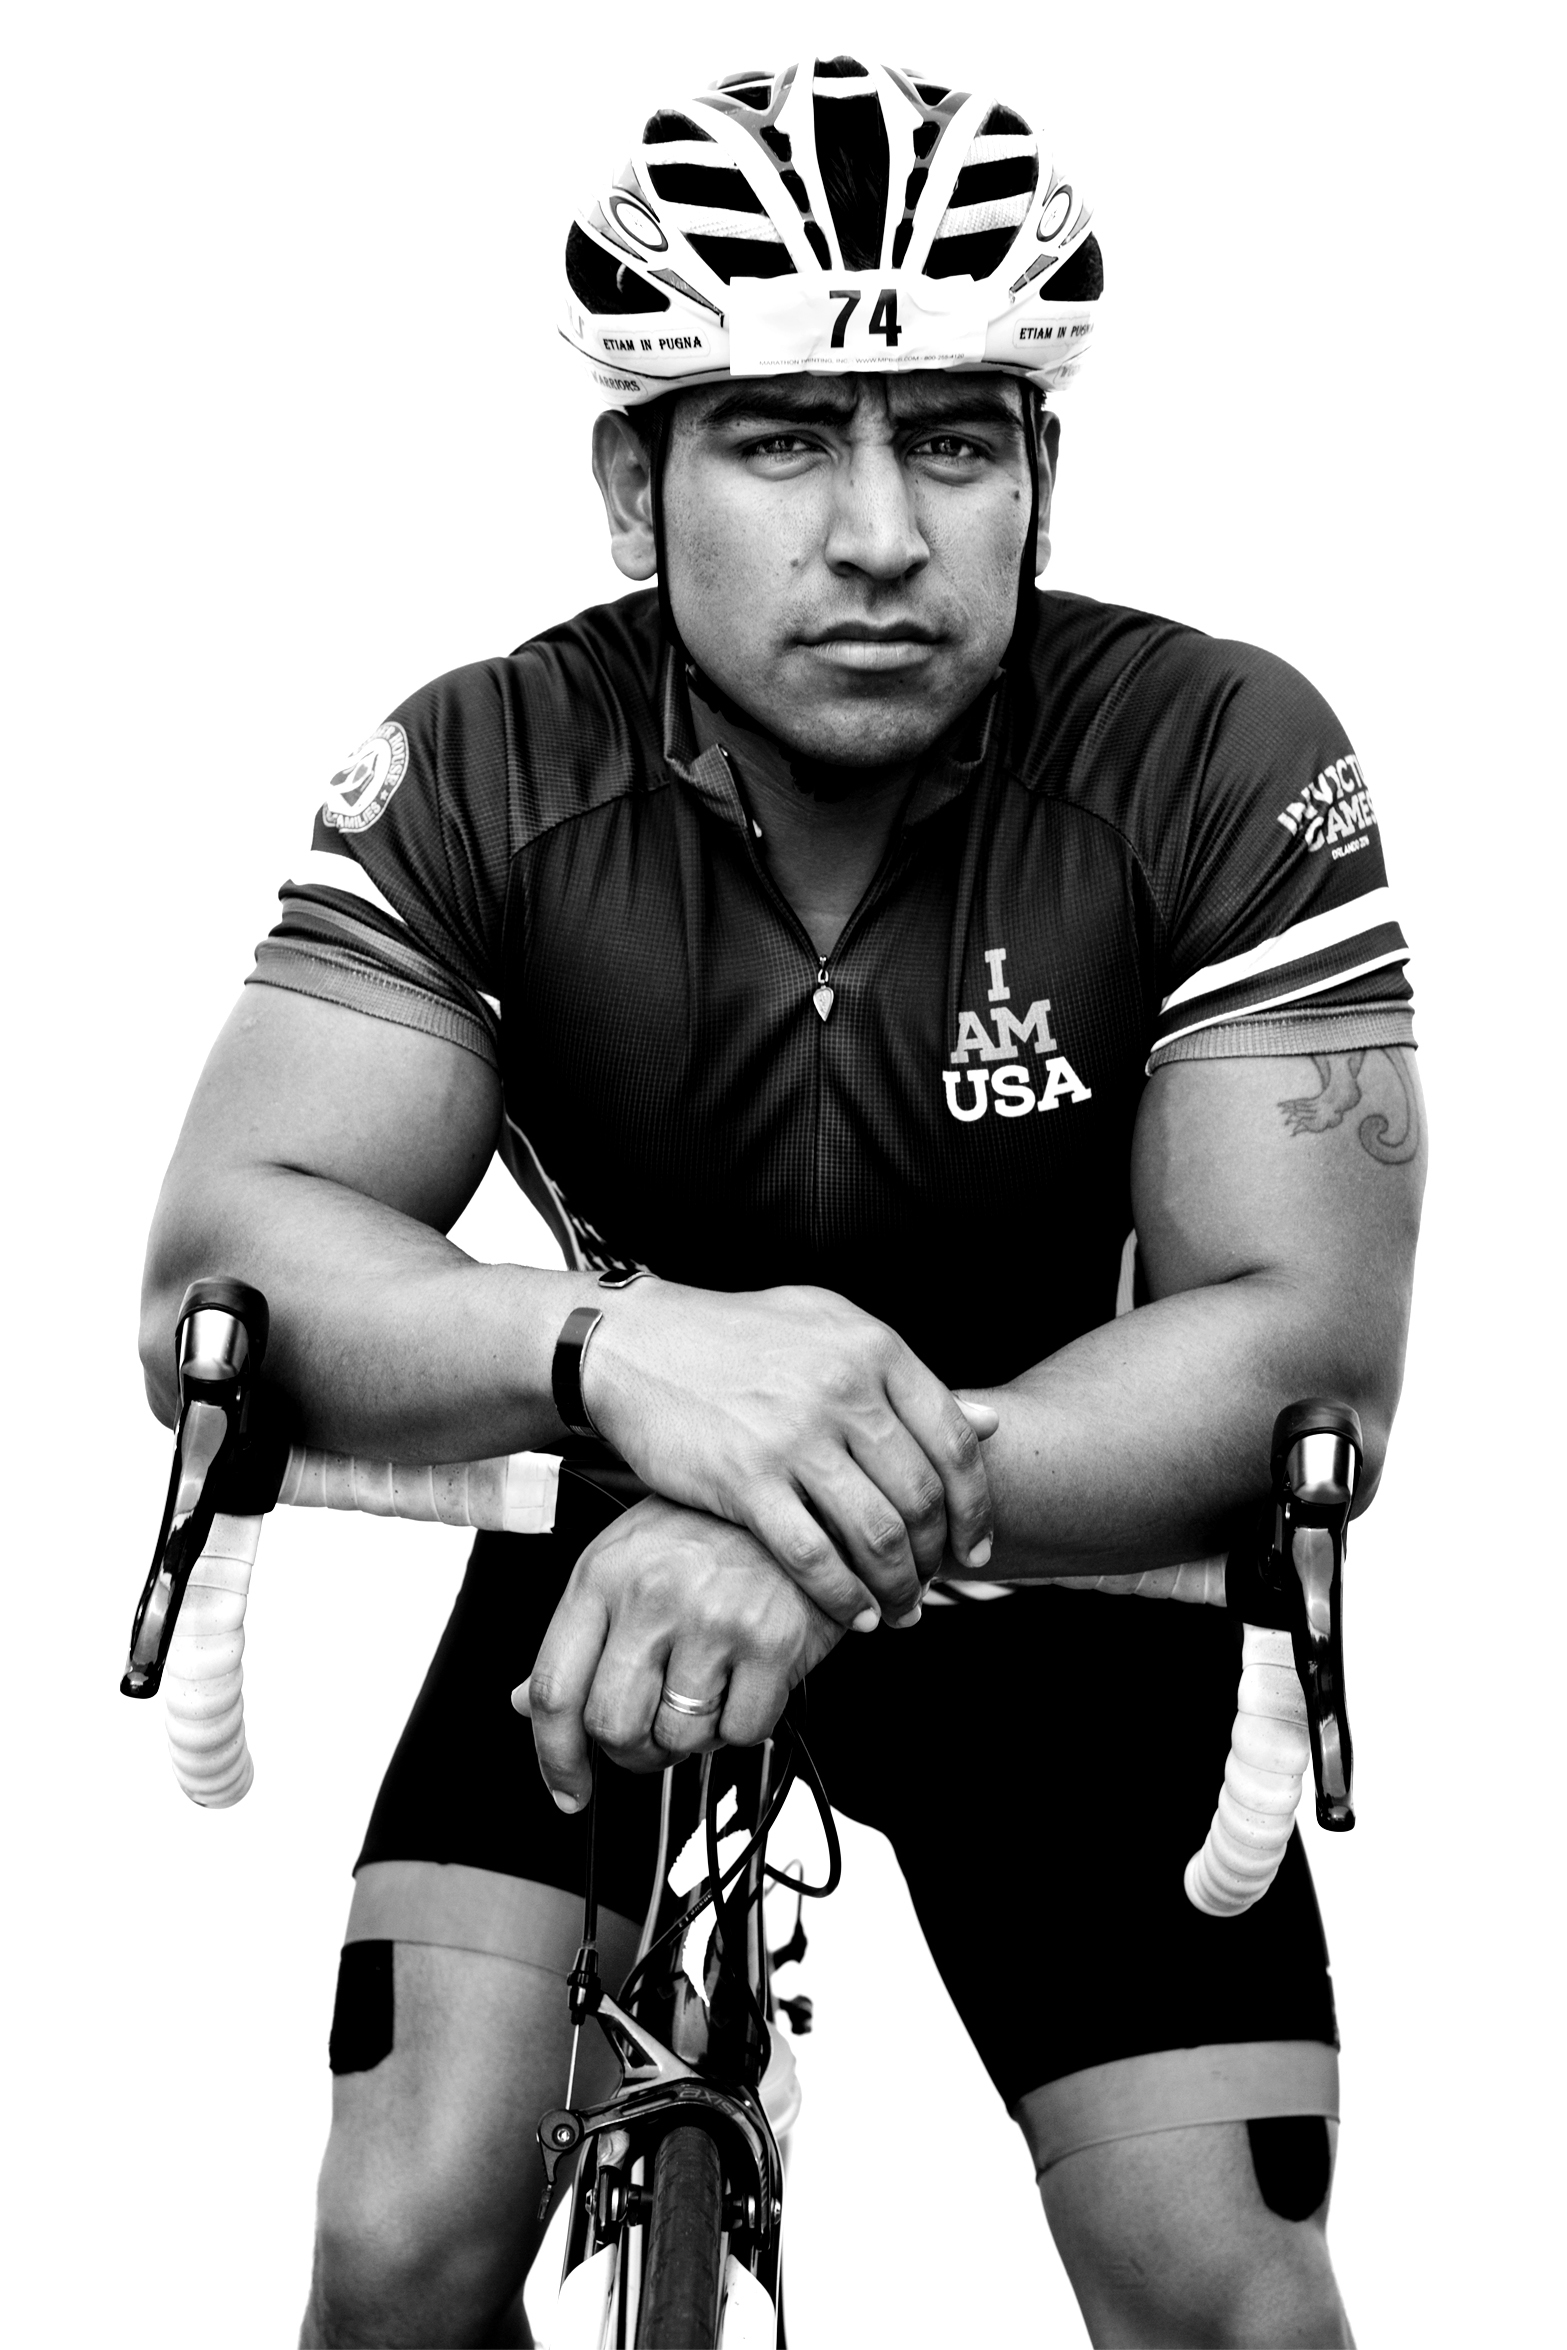 Rafael Cervantes, USA, competed in cycling, indoor rowing and sitting volleyball